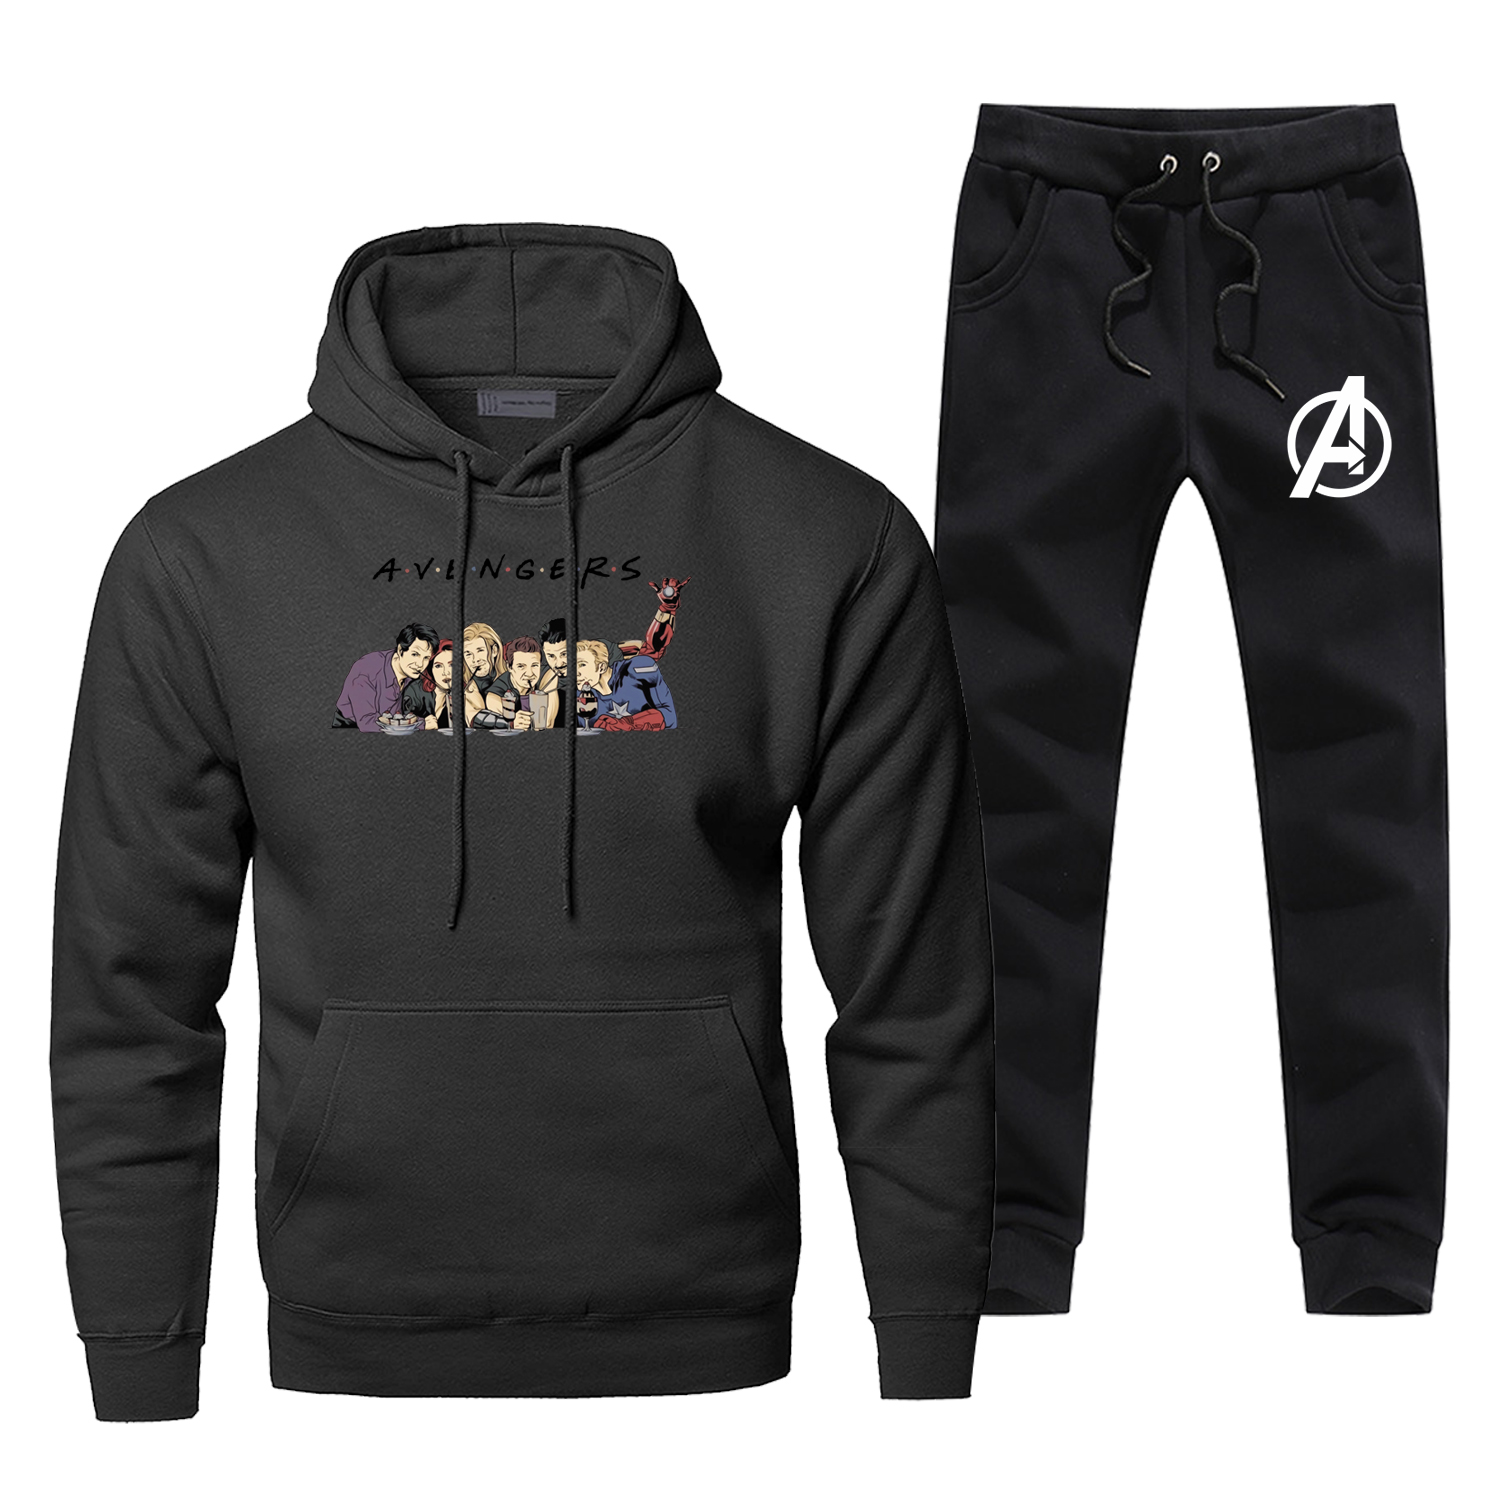 Fashion Marvel Avengers Endgame Friends Sweatshirts Men Casual Hoodies+pants 2piece Sets Marvel Avengers Sportswear Sweatpants